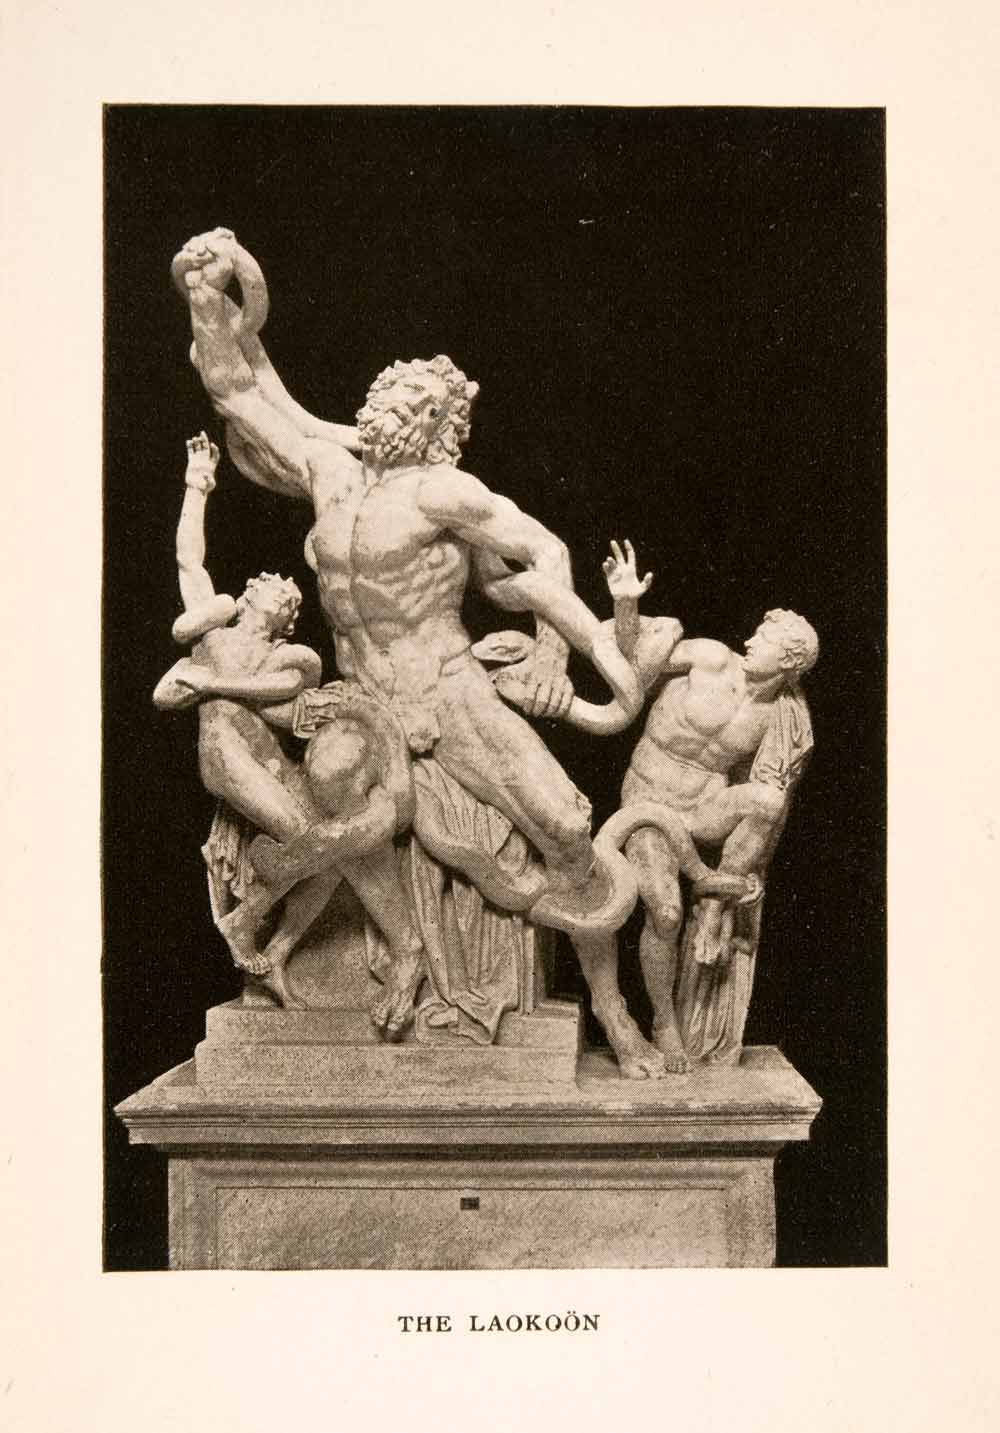 1905 Photolithograph Greek Sculpture Art Laocoön Mythology Trojan XGKA6